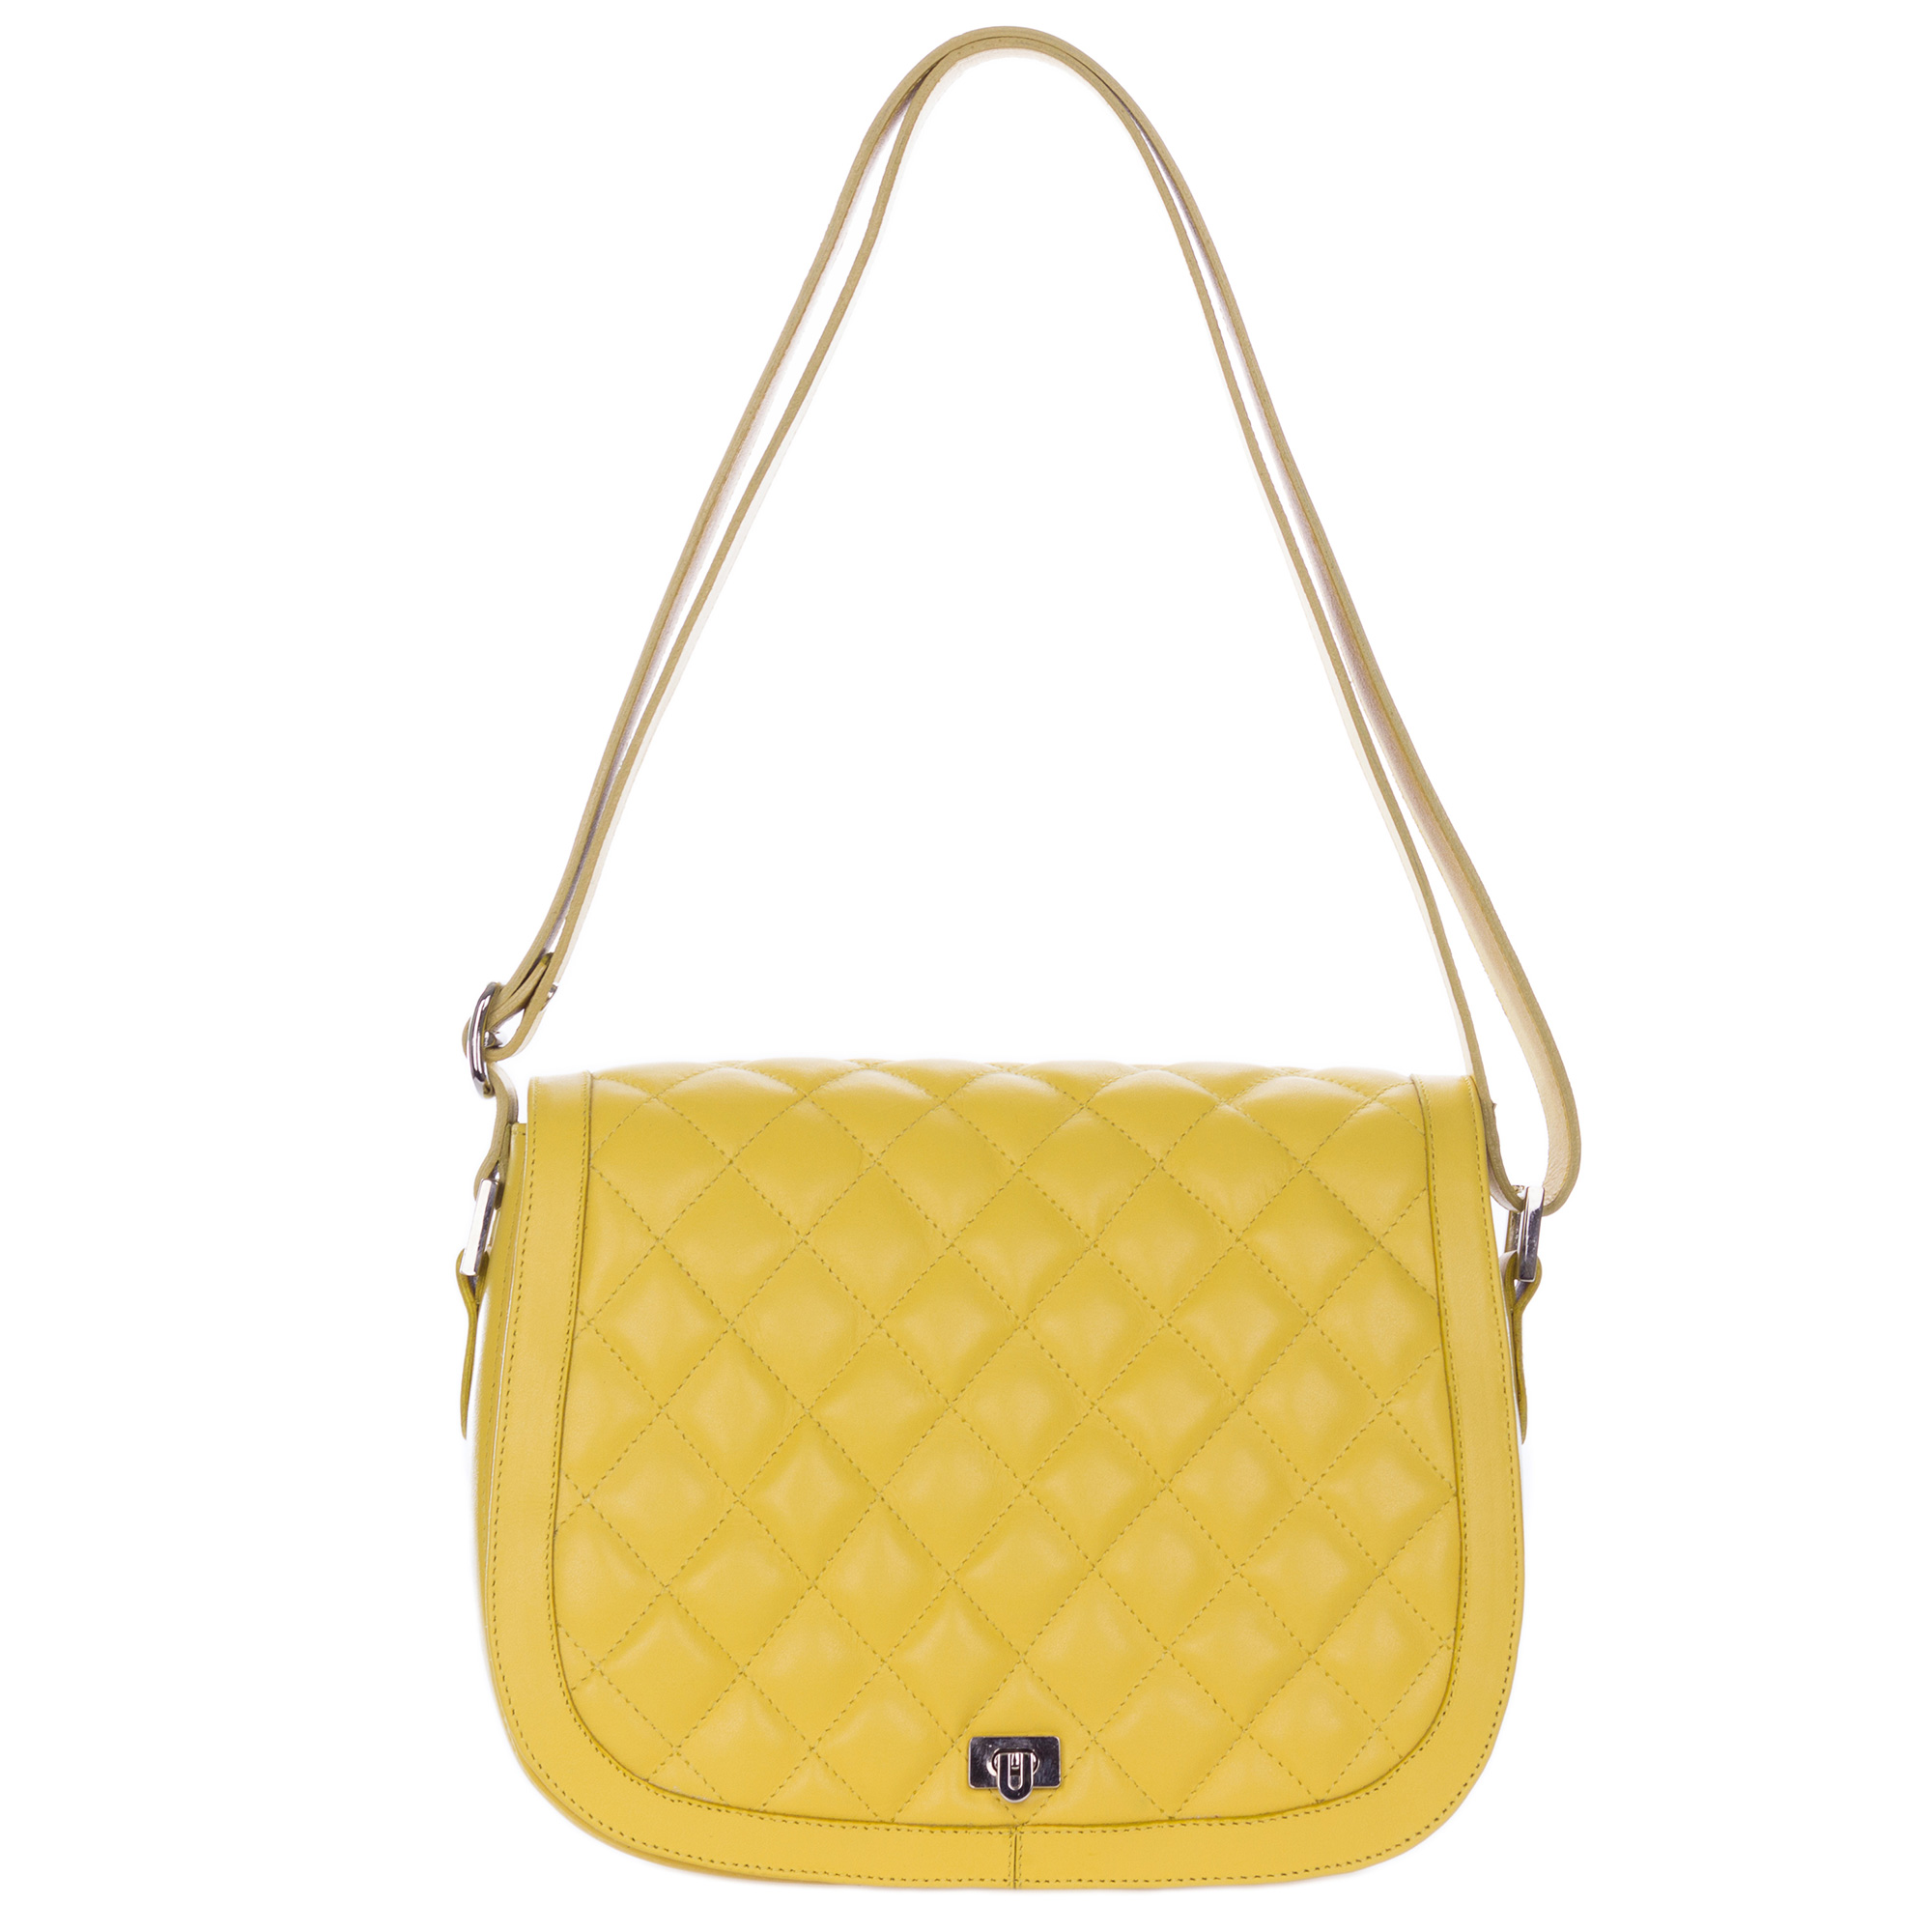 Giordano Italian Made Quilted Yellow Leather Messenger Shoulder Bag - / CLEARANCE /